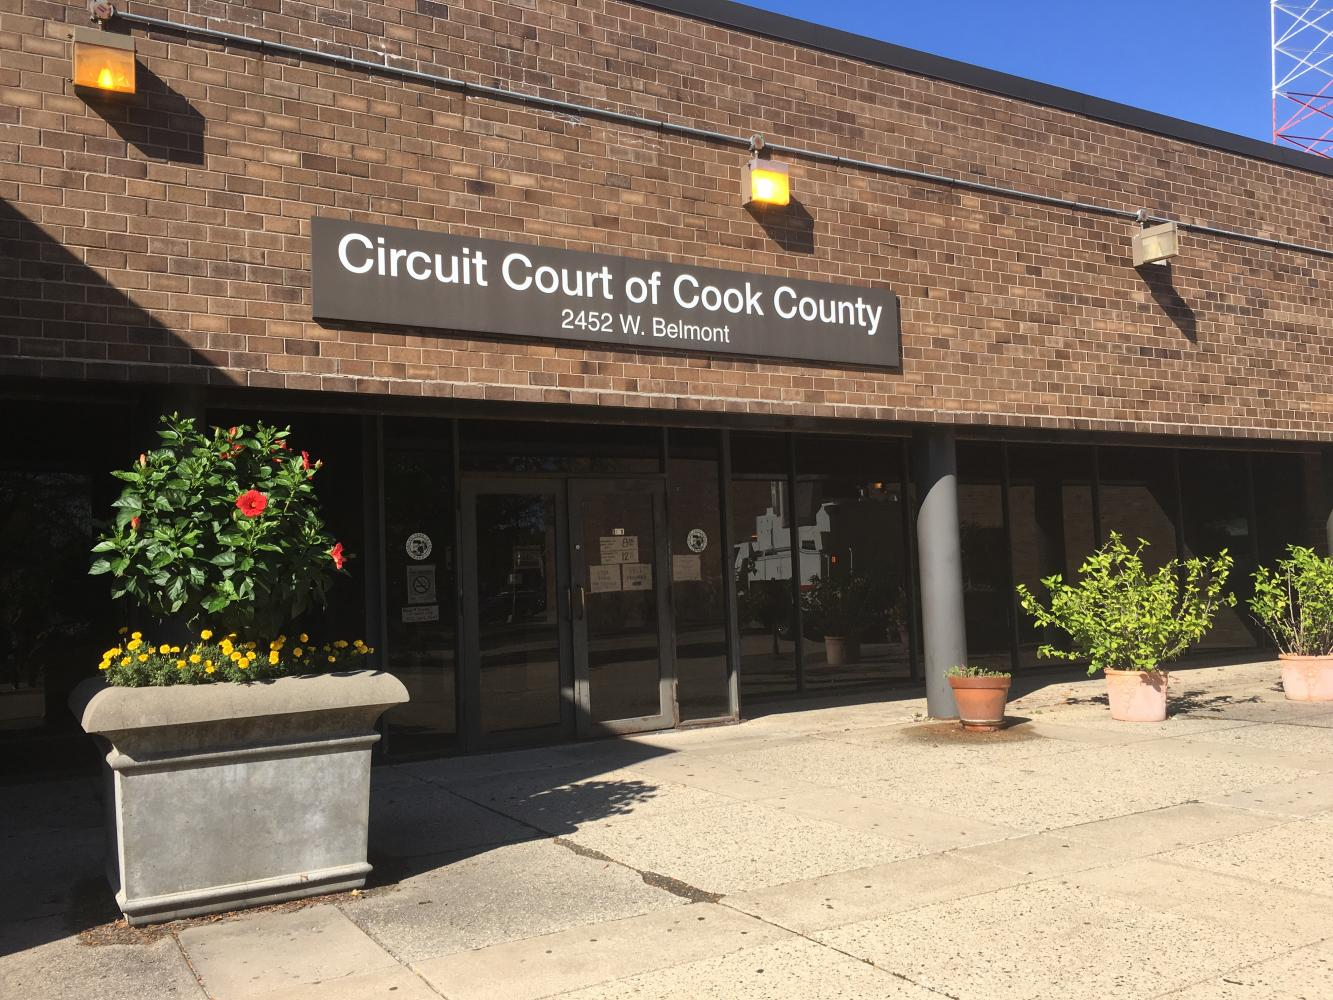 The 42nd branch of the Circuit Court of Cook County, 2452 W. Belmont Ave. Northwestern doctoral graduate Chad Estep appeared in court Monday for a preliminary hearing in which the judge found probable cause to pursue criminal charges.